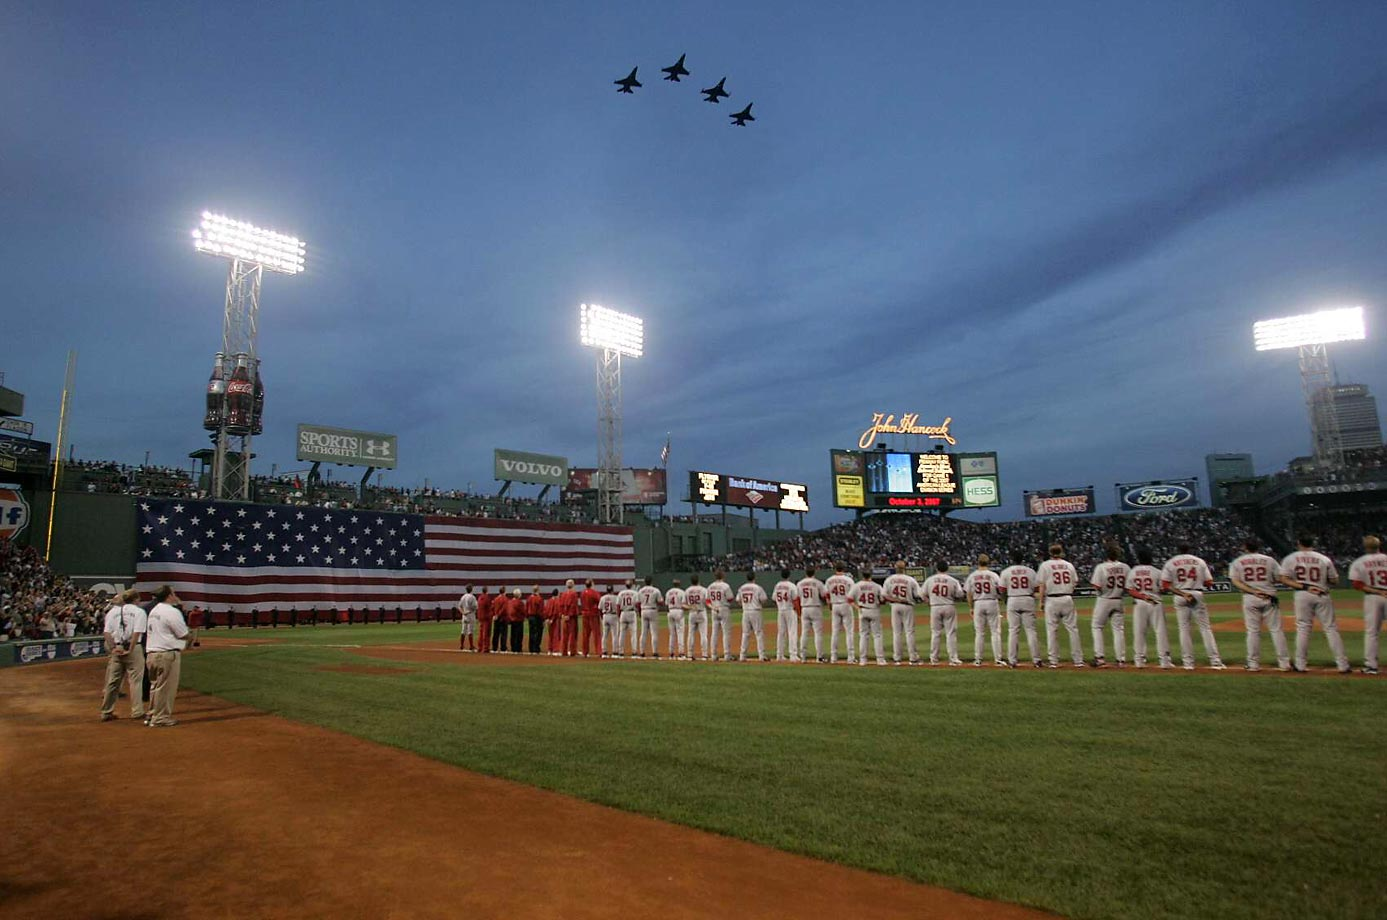 Jets fly over Fenway Park in Boston before the Red Sox play the Los Angeles Angels in 2007.